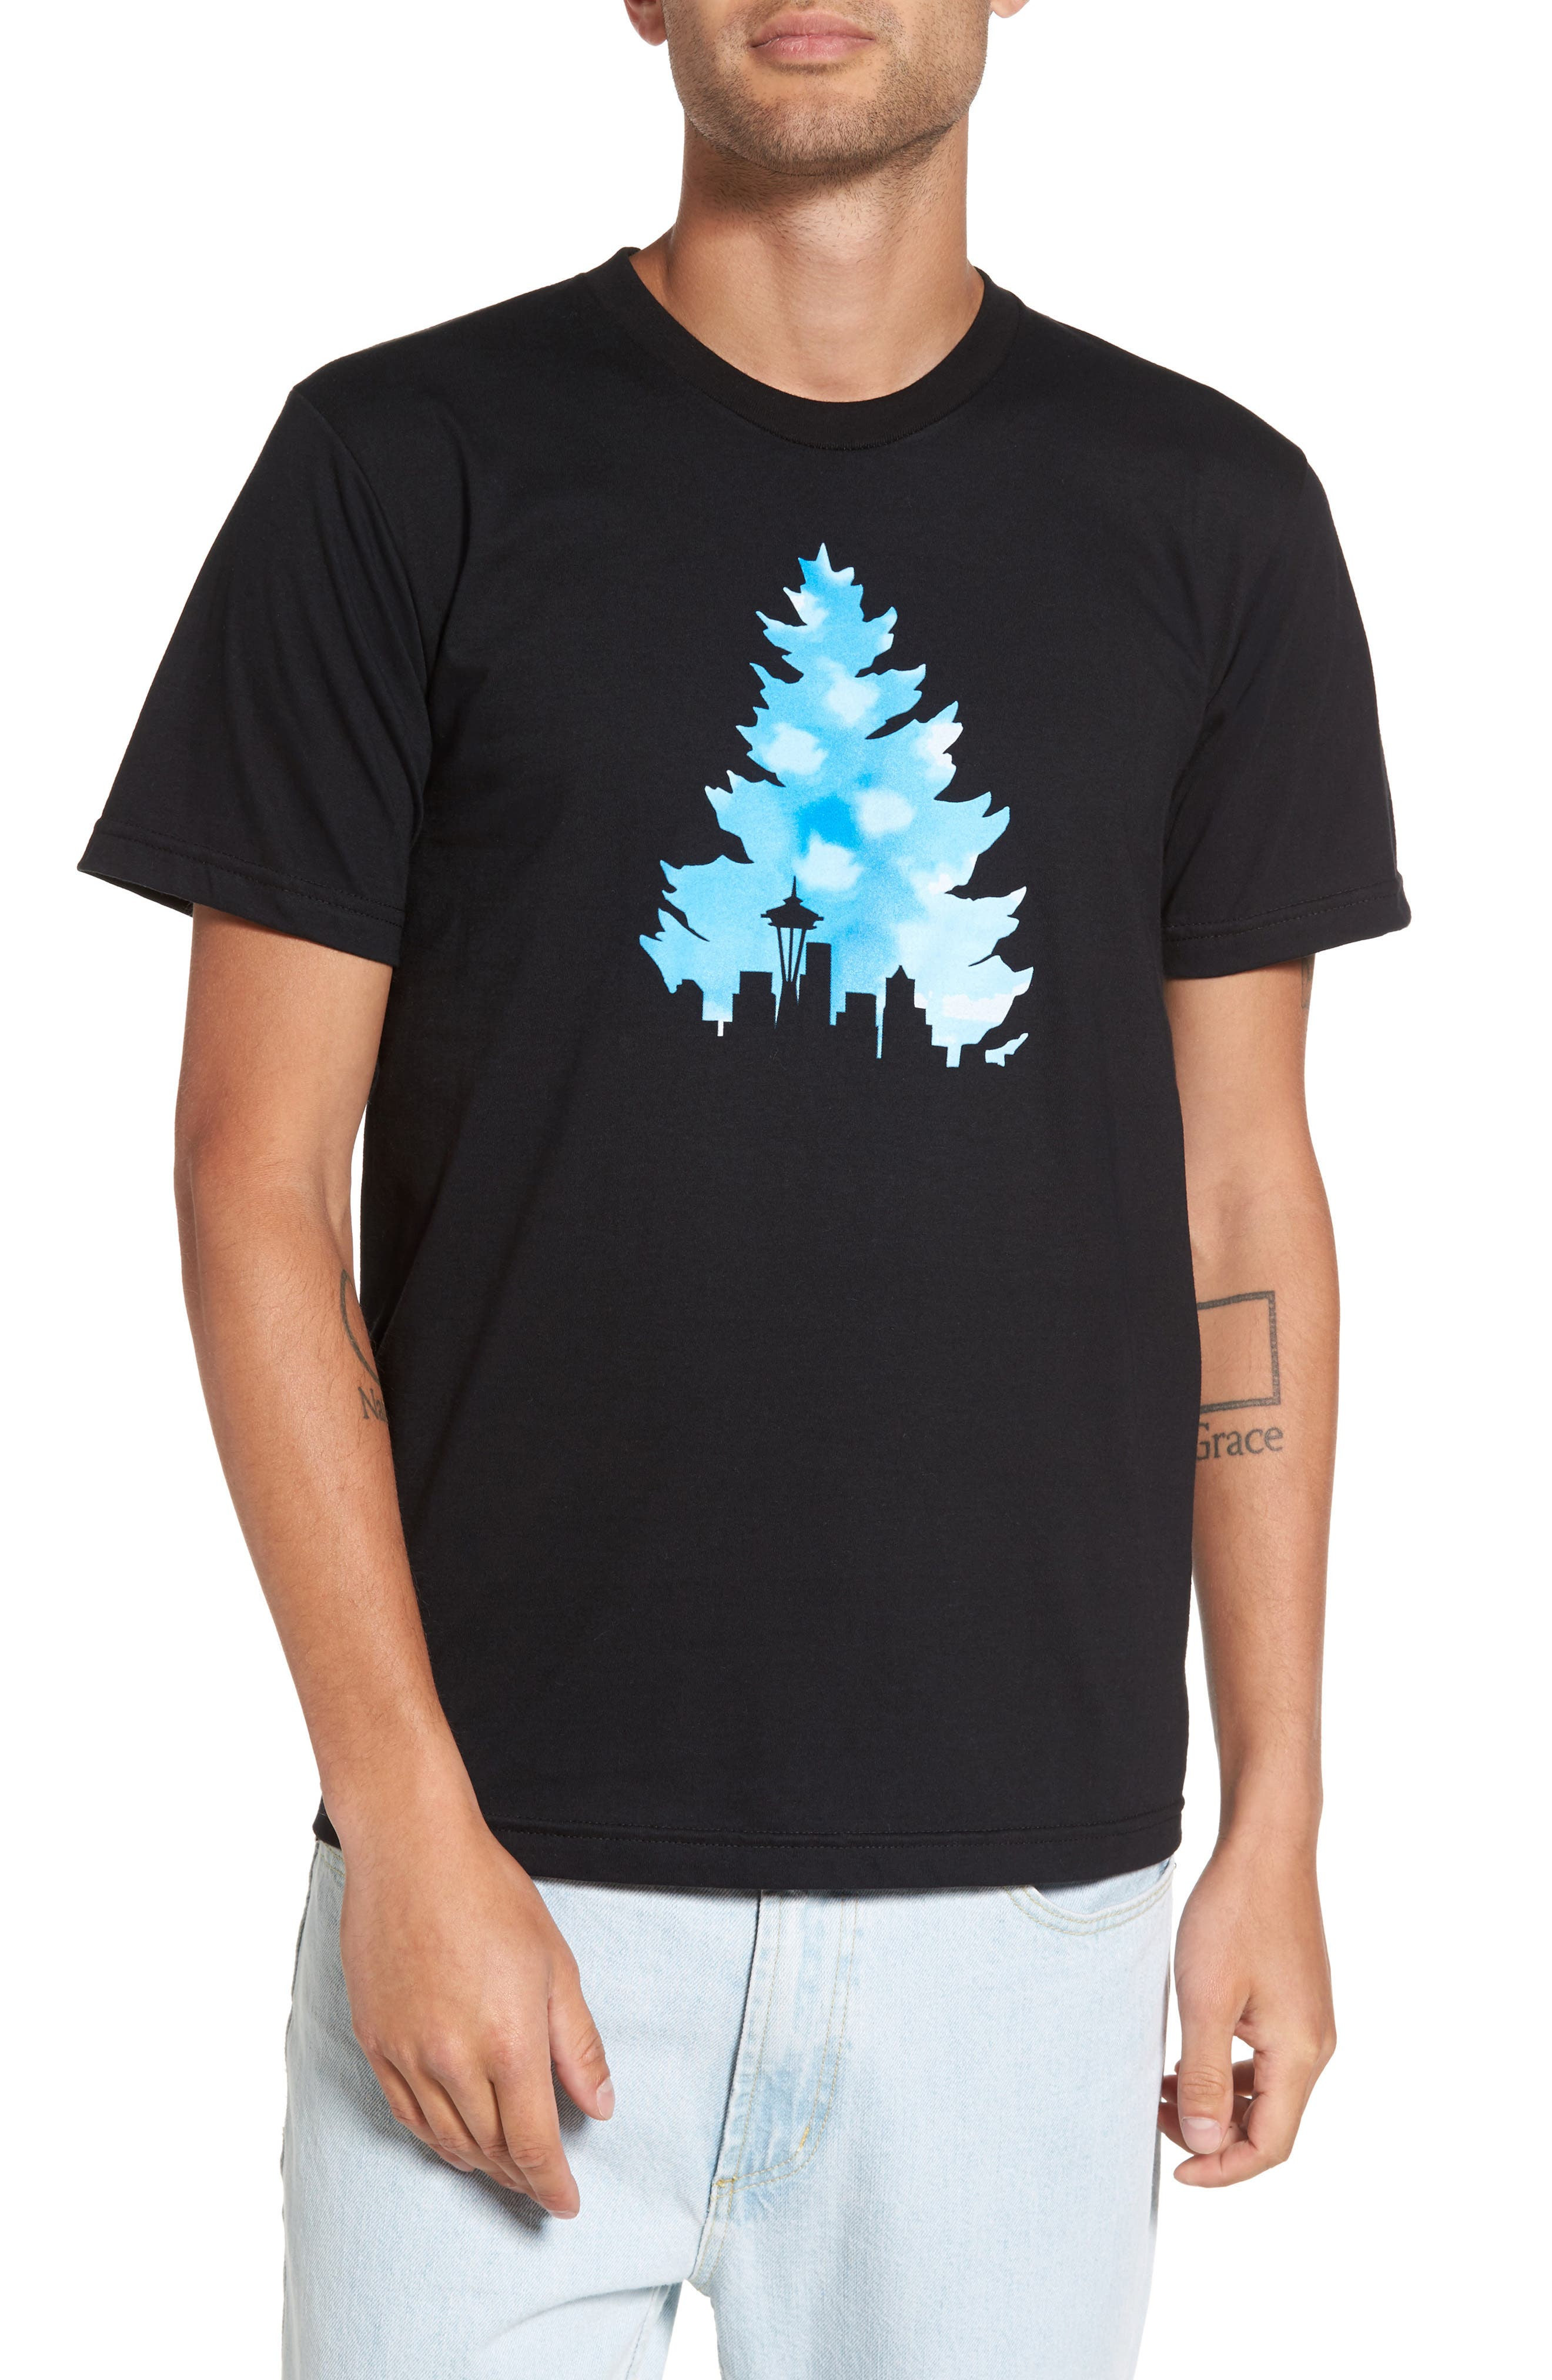 Main Image - Casual Industrees Johnny Tree Clouds T-Shirt